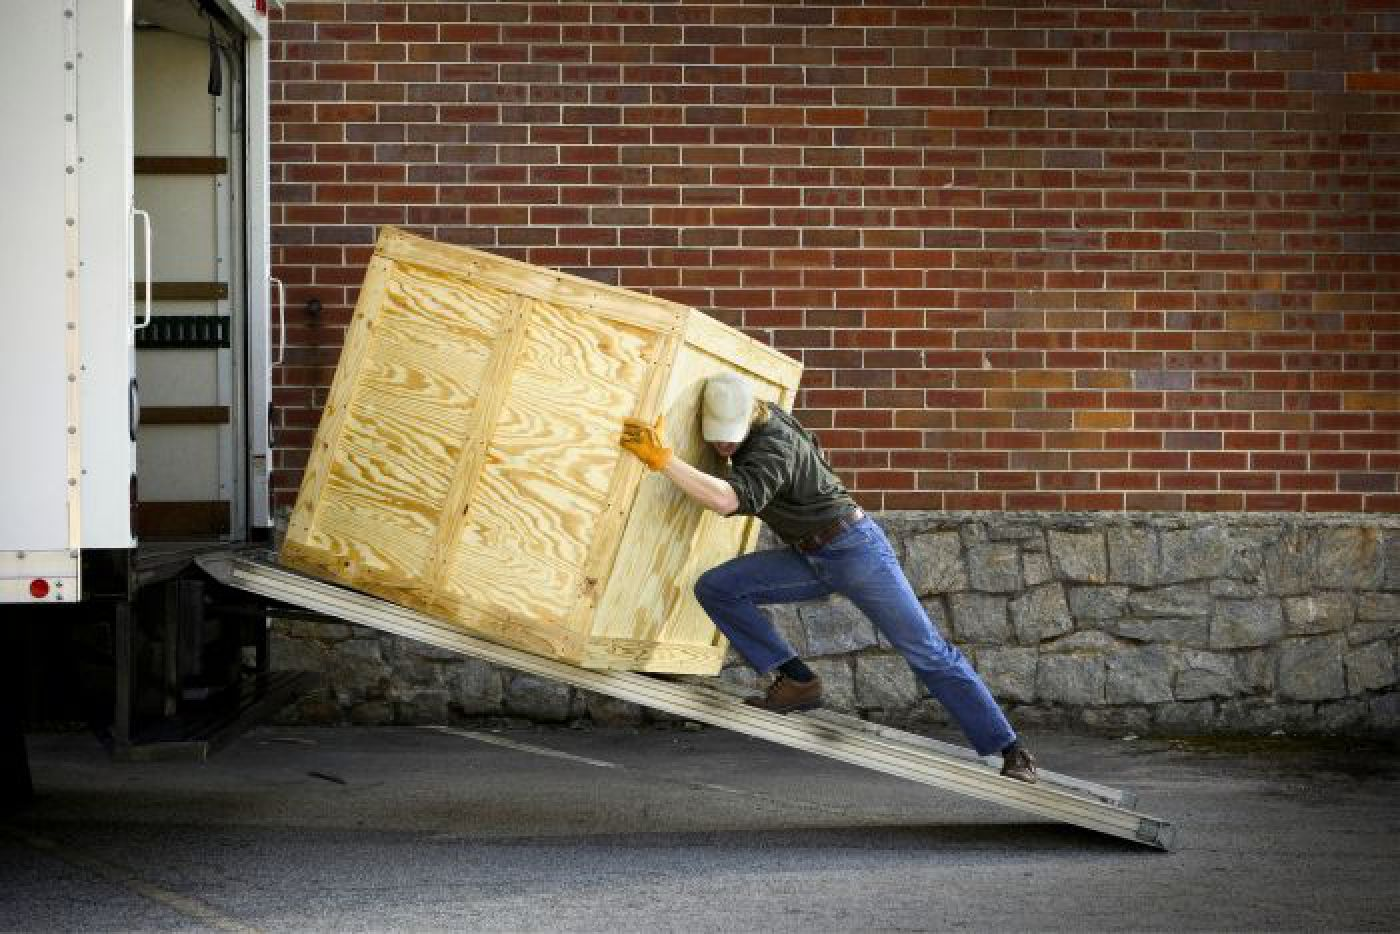 Man pushing large wooden box up ramp into box truck